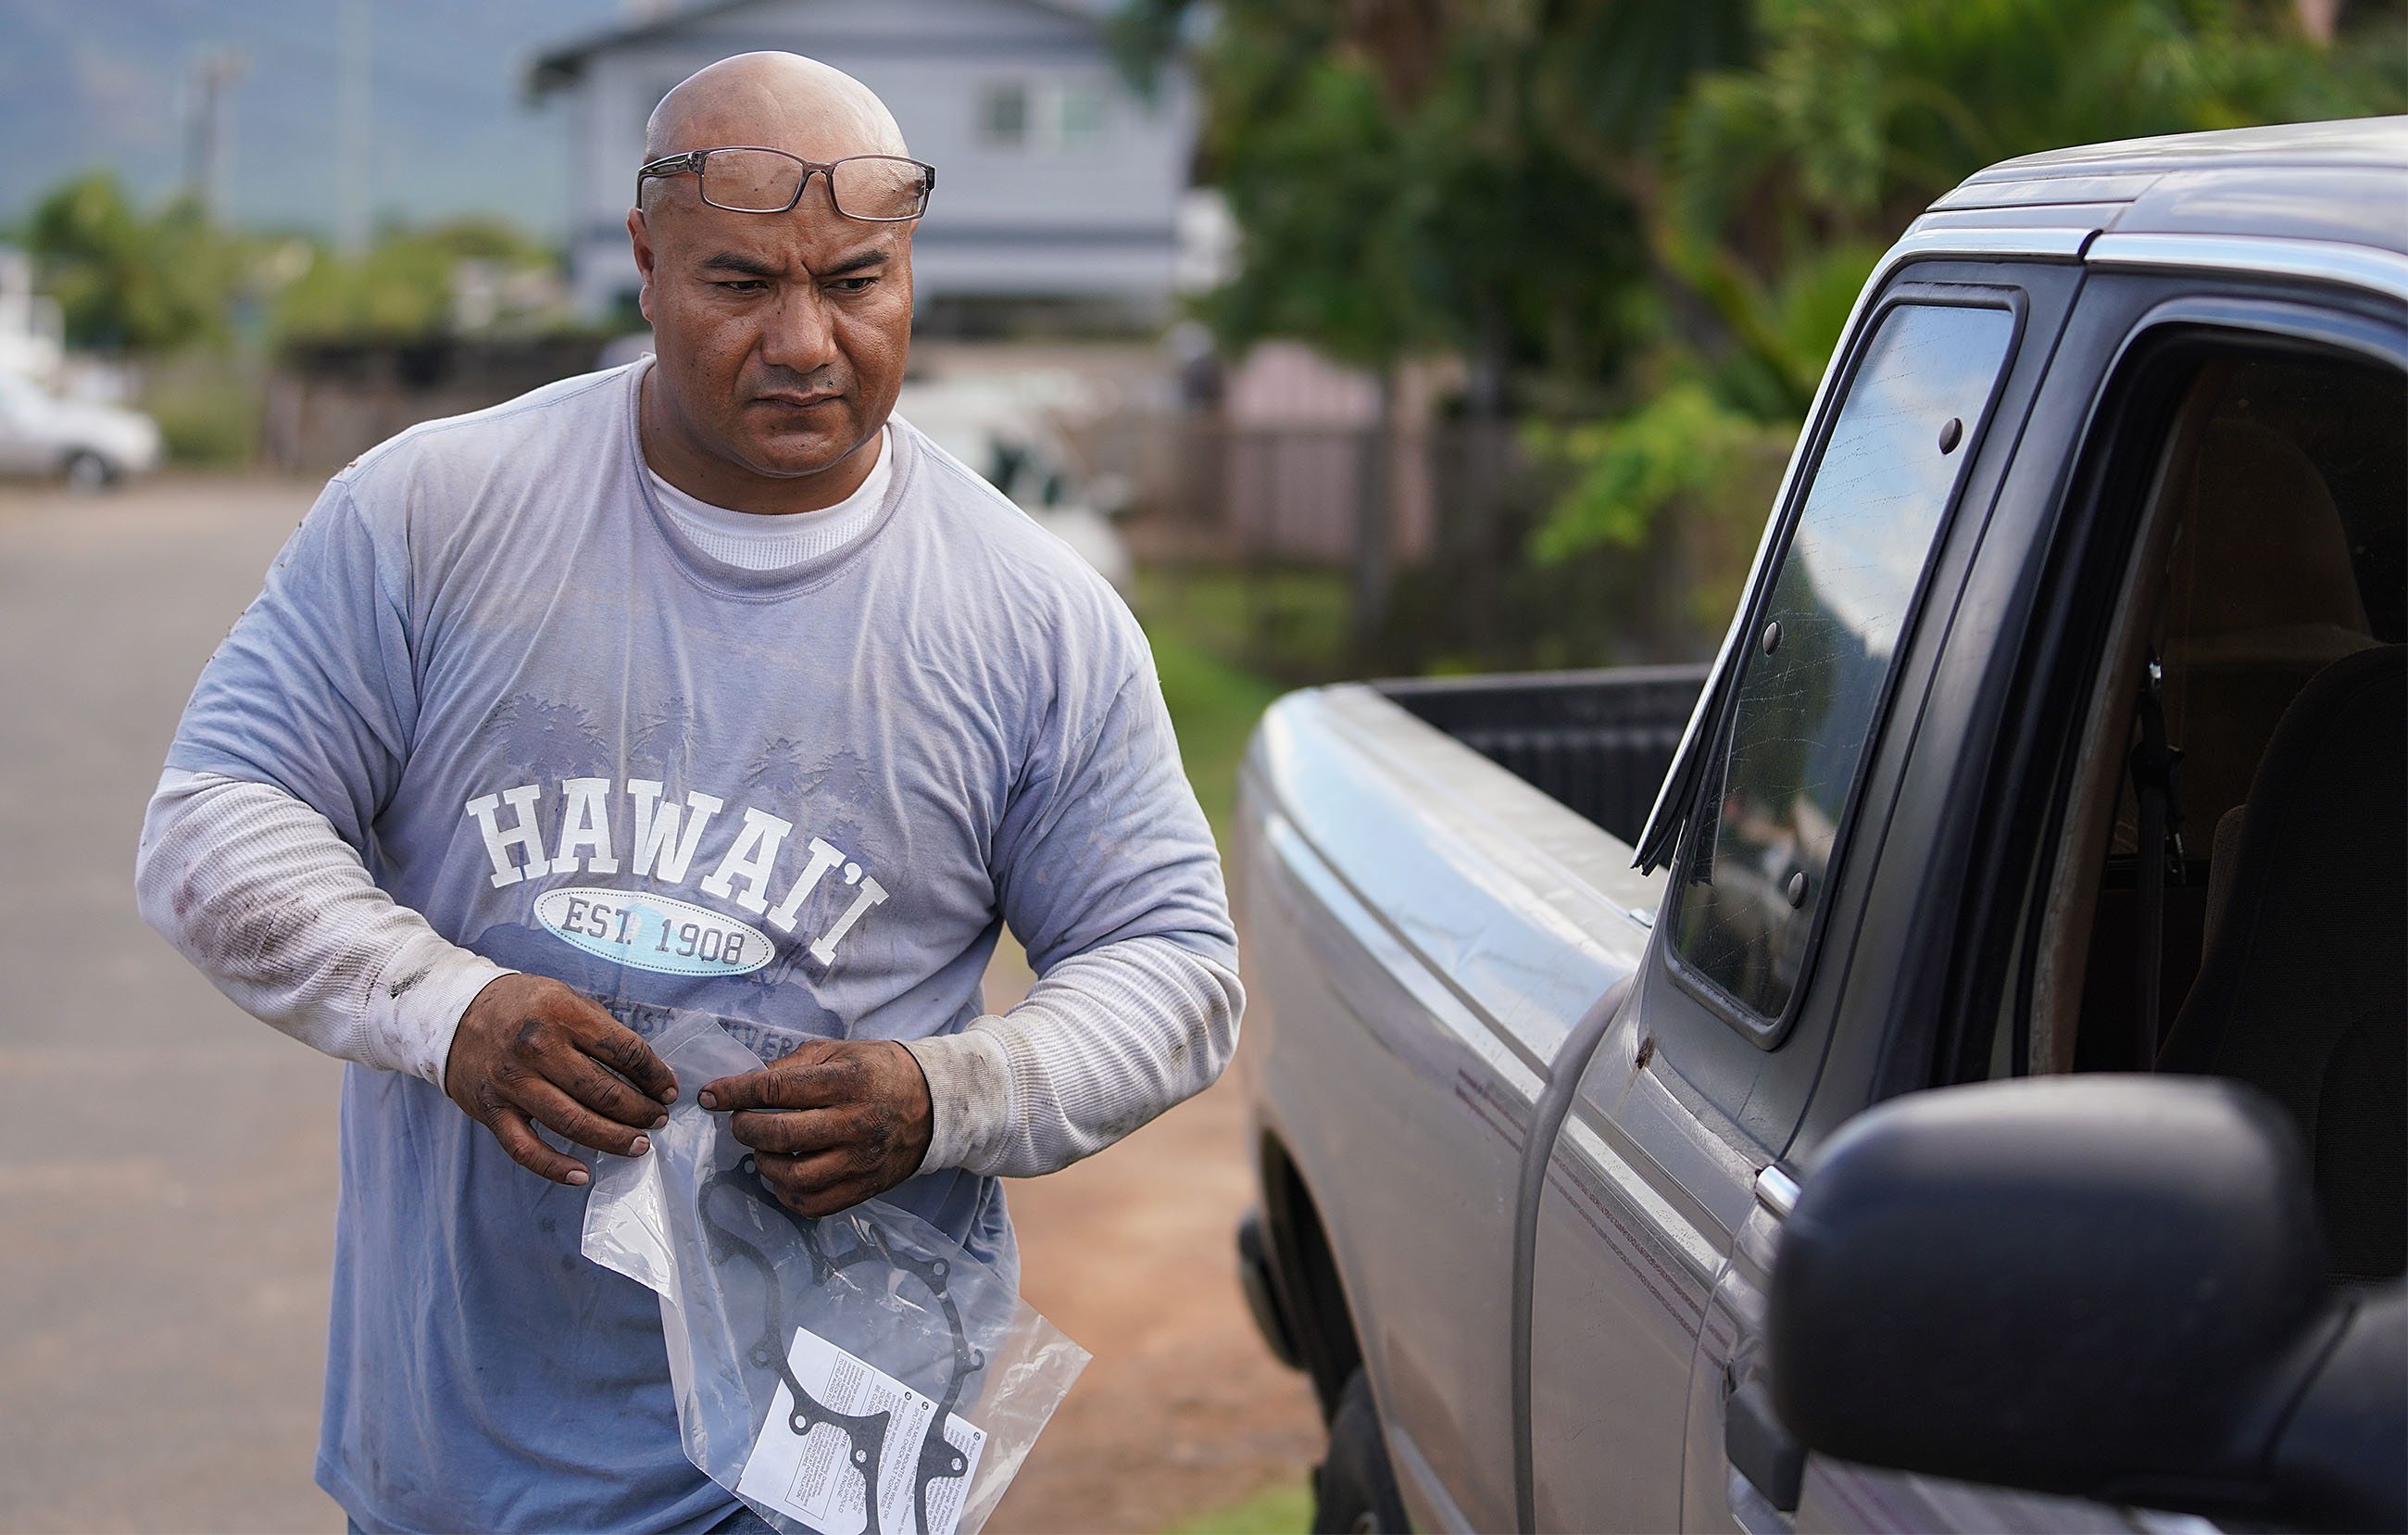 Sefo Fataai fixing truck out in Maili Waianae. Sefo holds water pump parts for a truck he is fixing outside along the road.